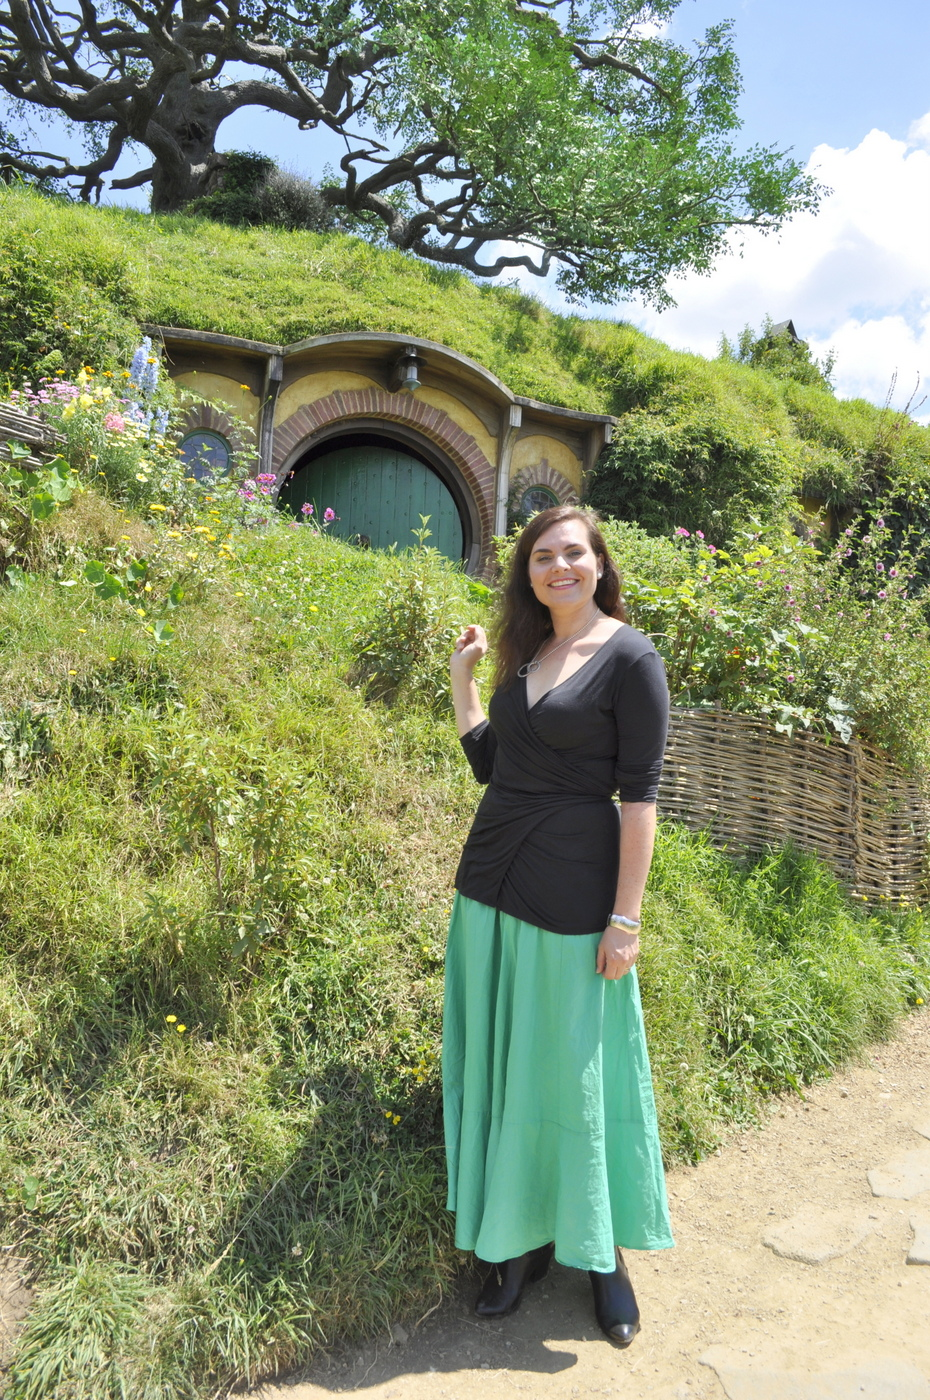 Hobbiton Movie Set Review